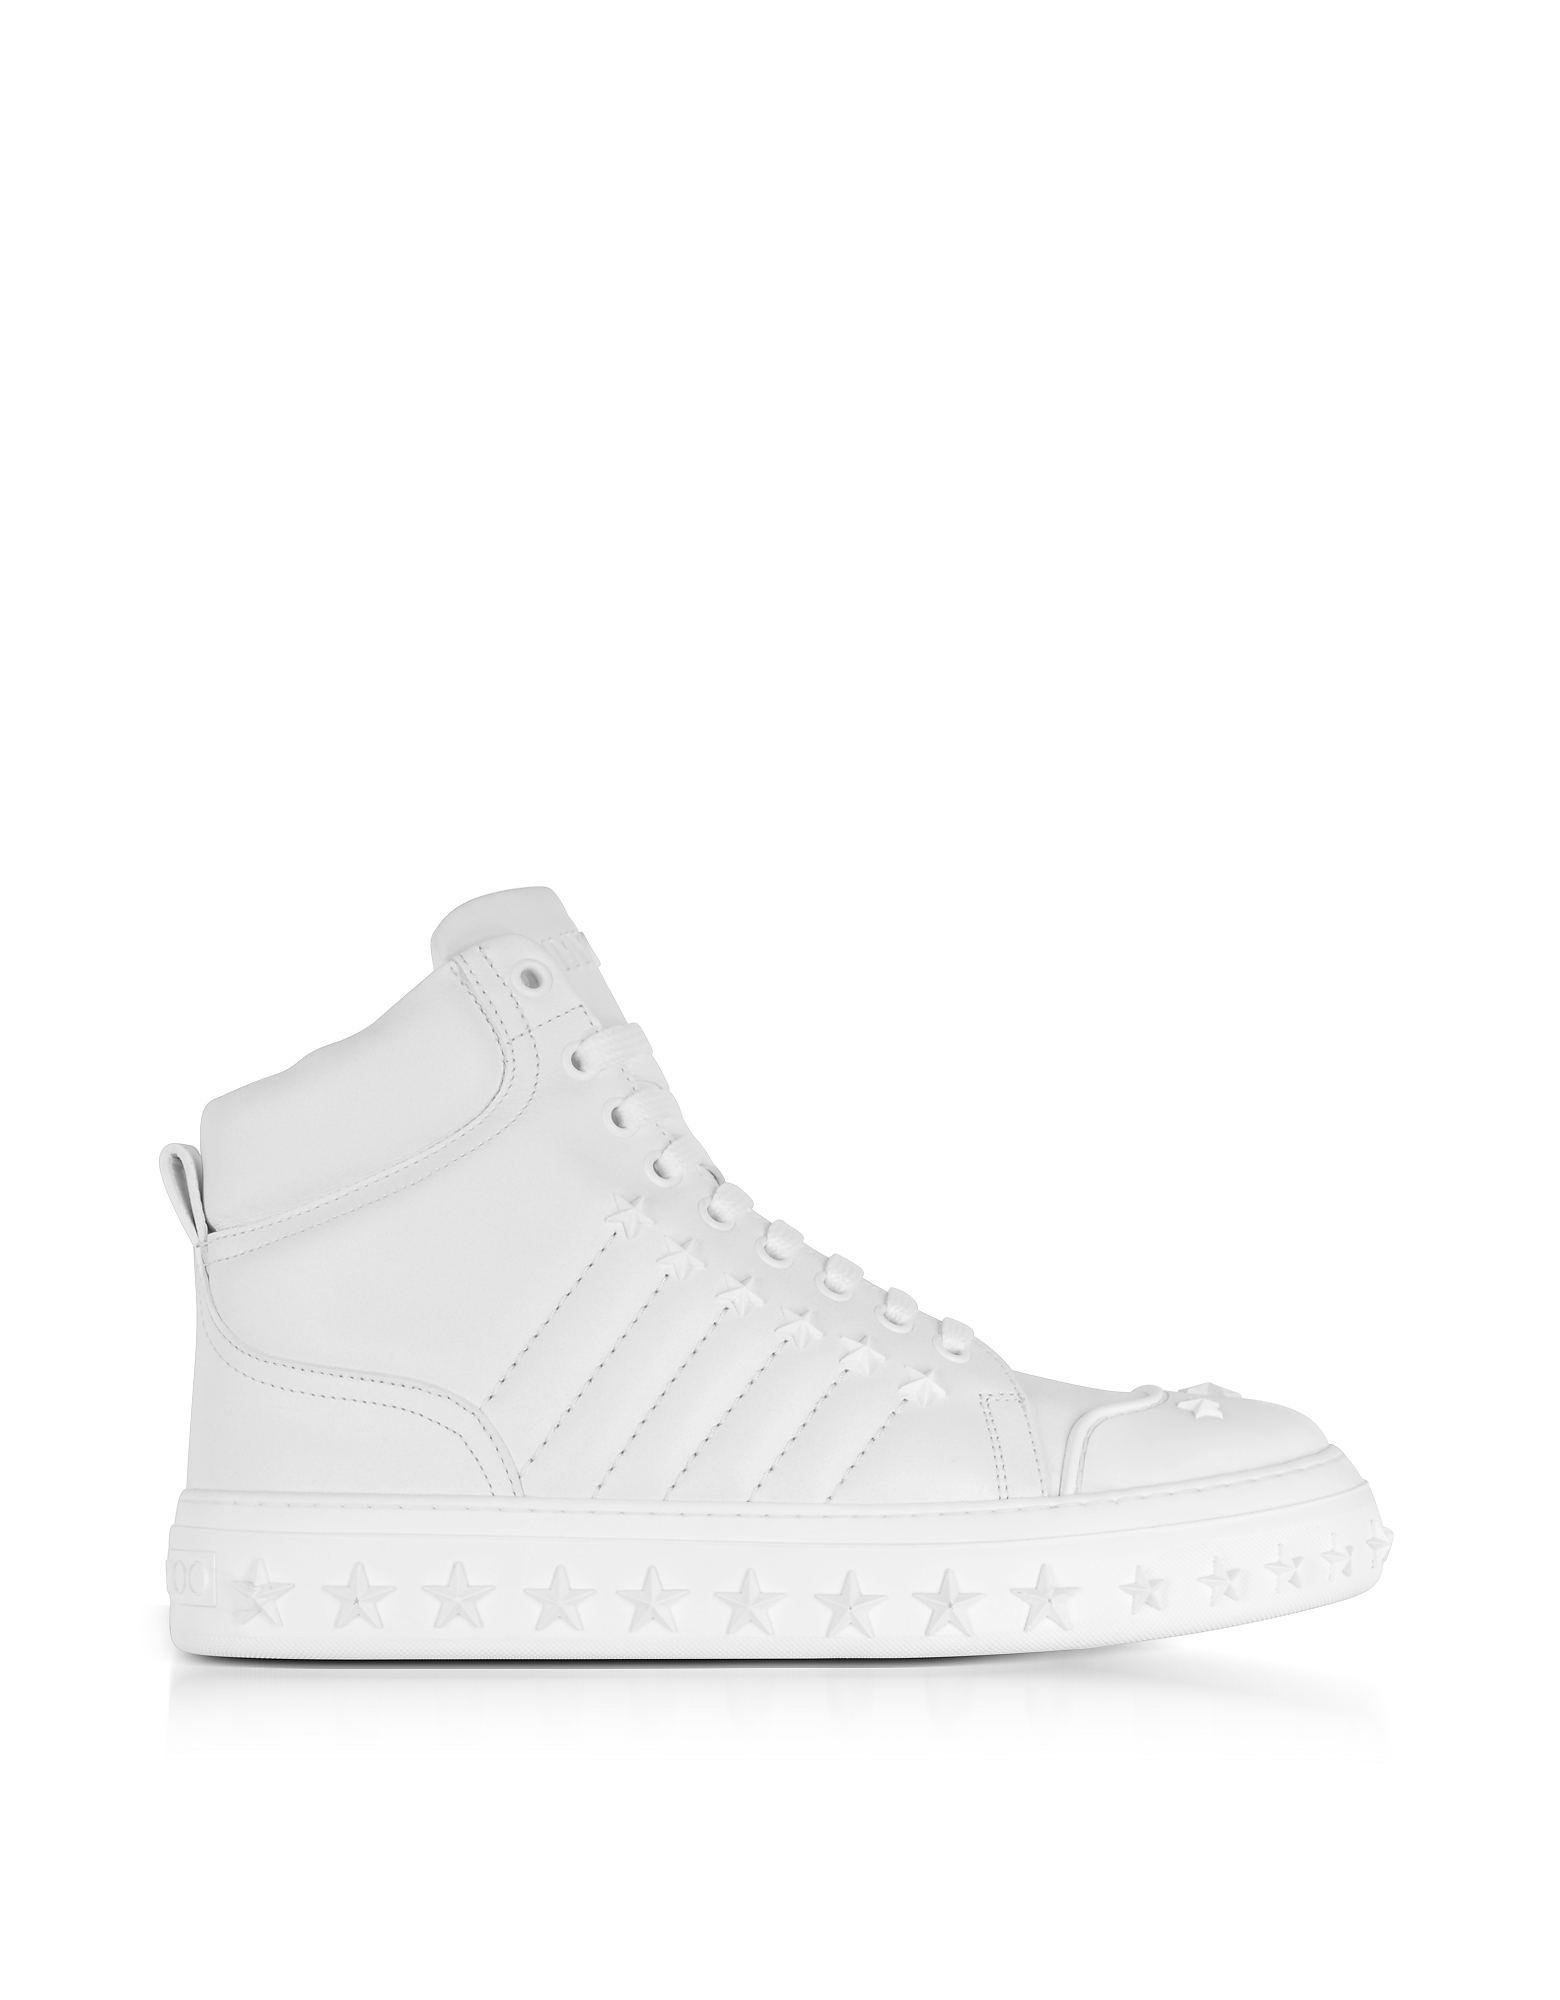 Jimmy Choo Shoes, Cassius Ulta White Leather High Top Sneakers w/Stars